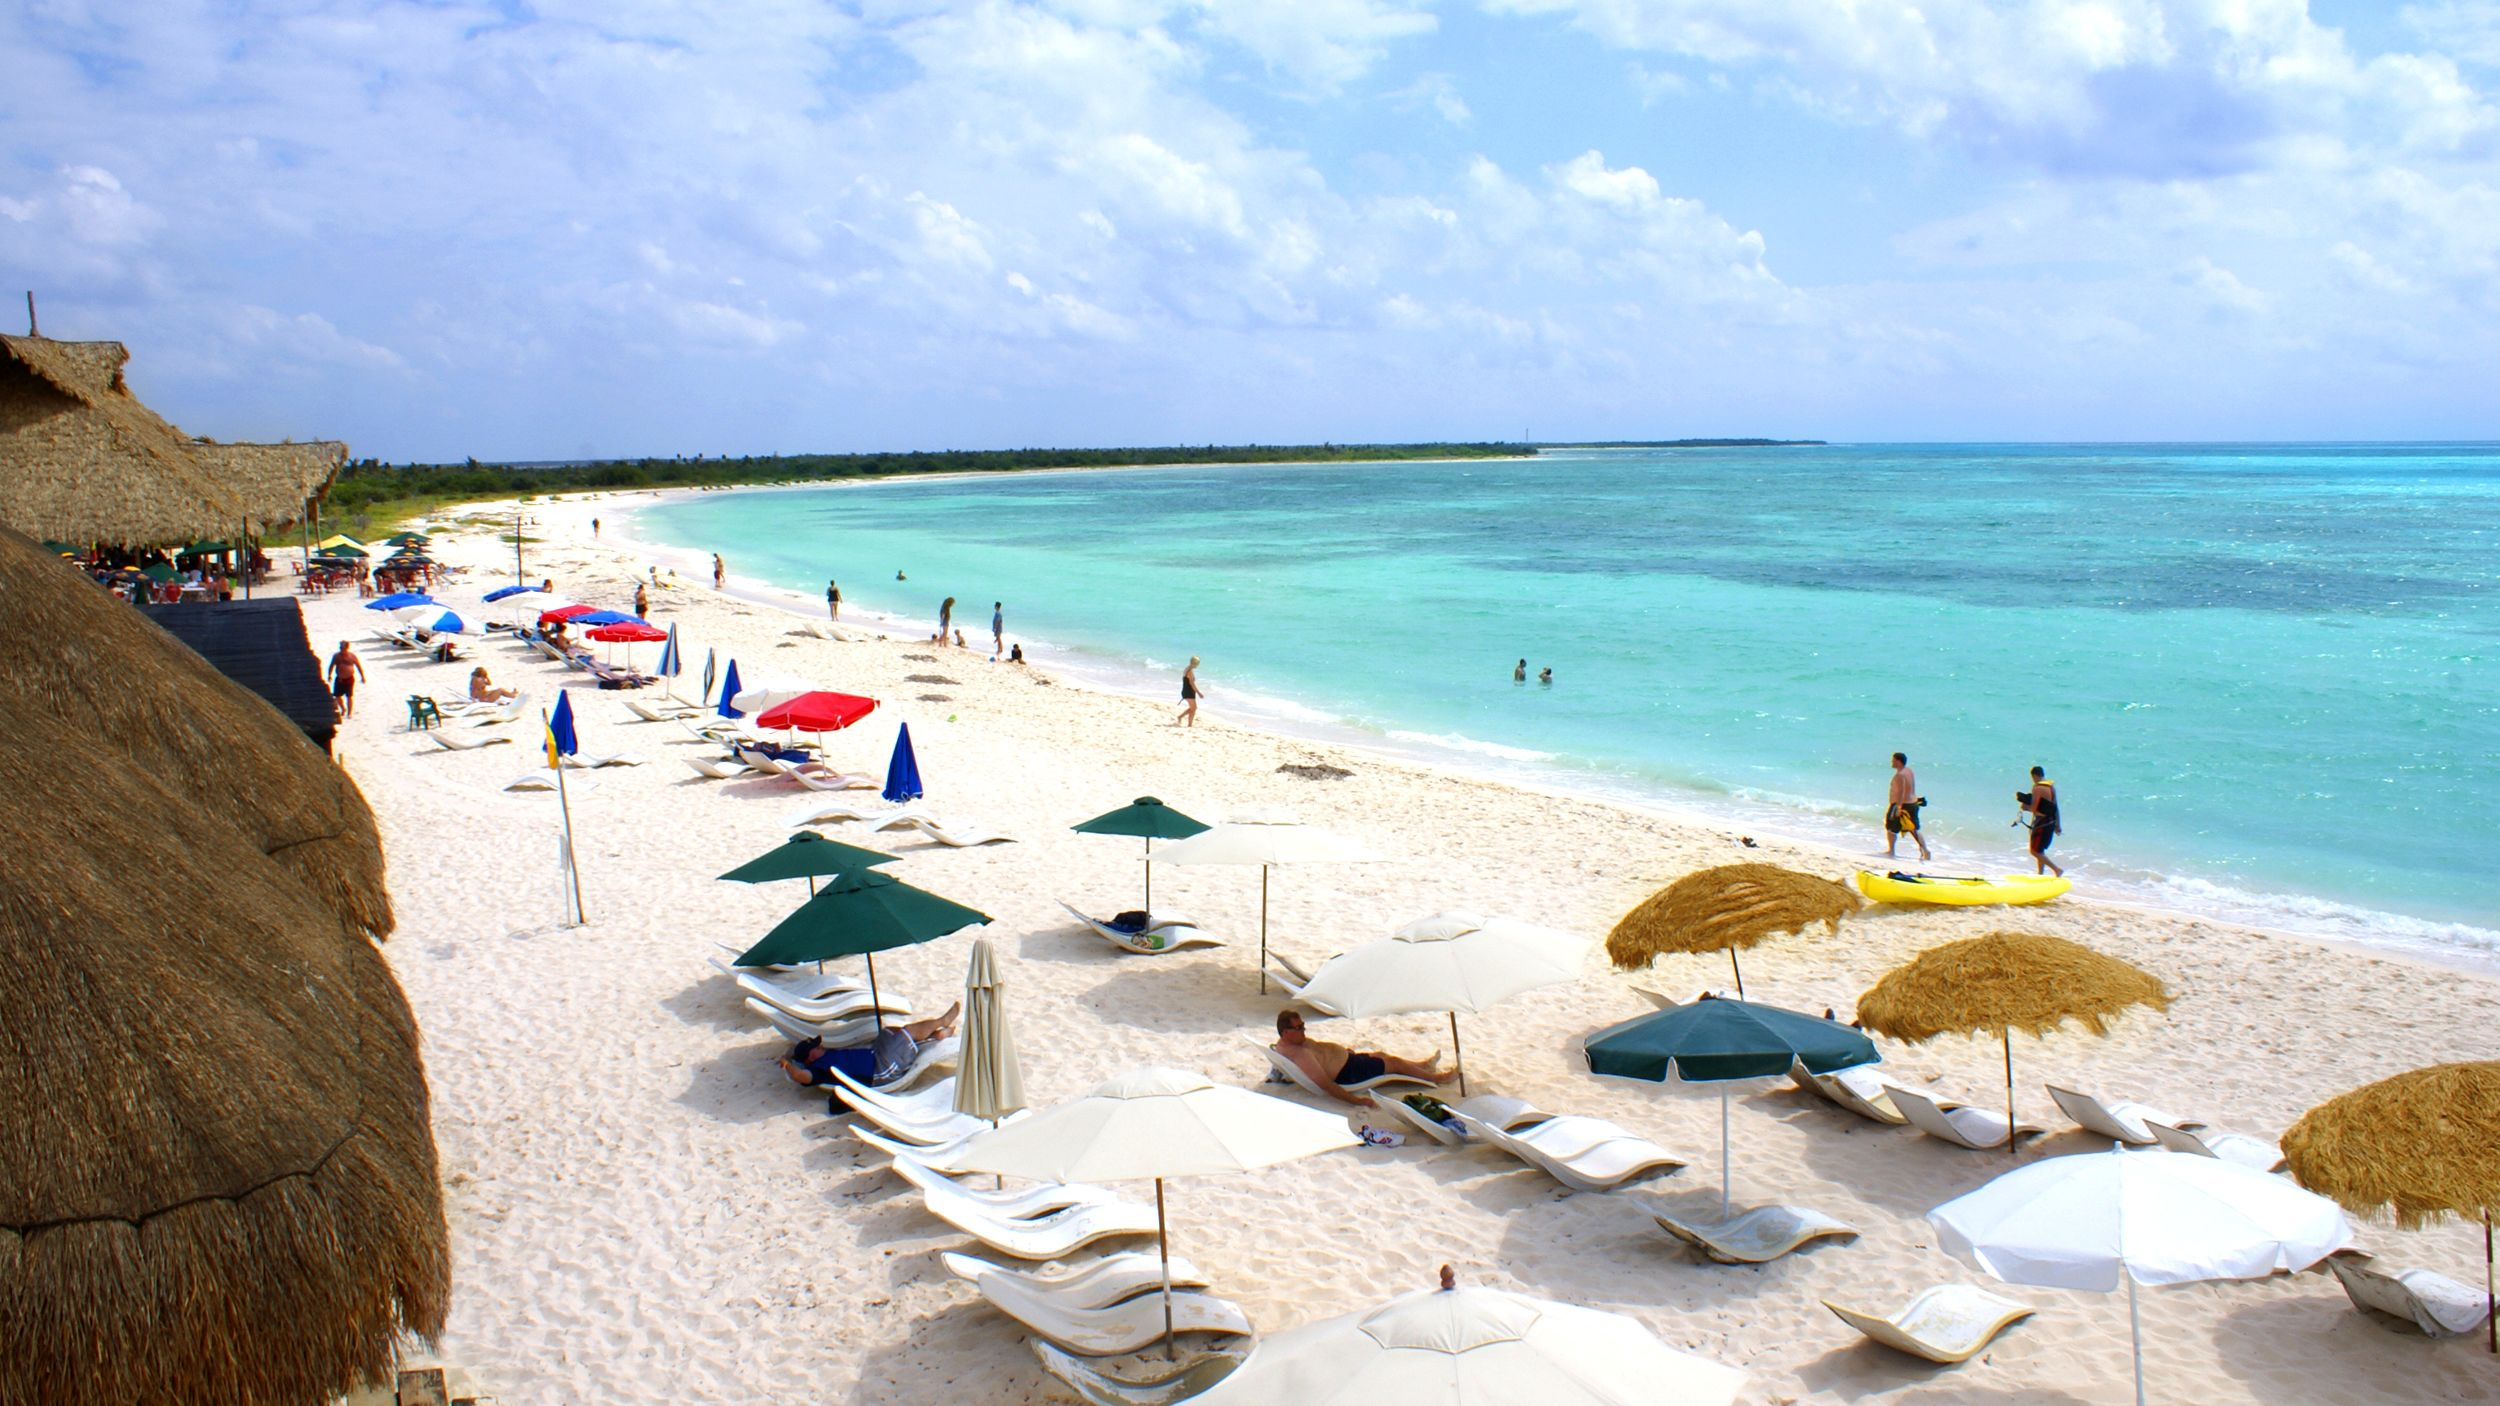 Umbrellas and beach goers on a sandy beach in Riviera Maya